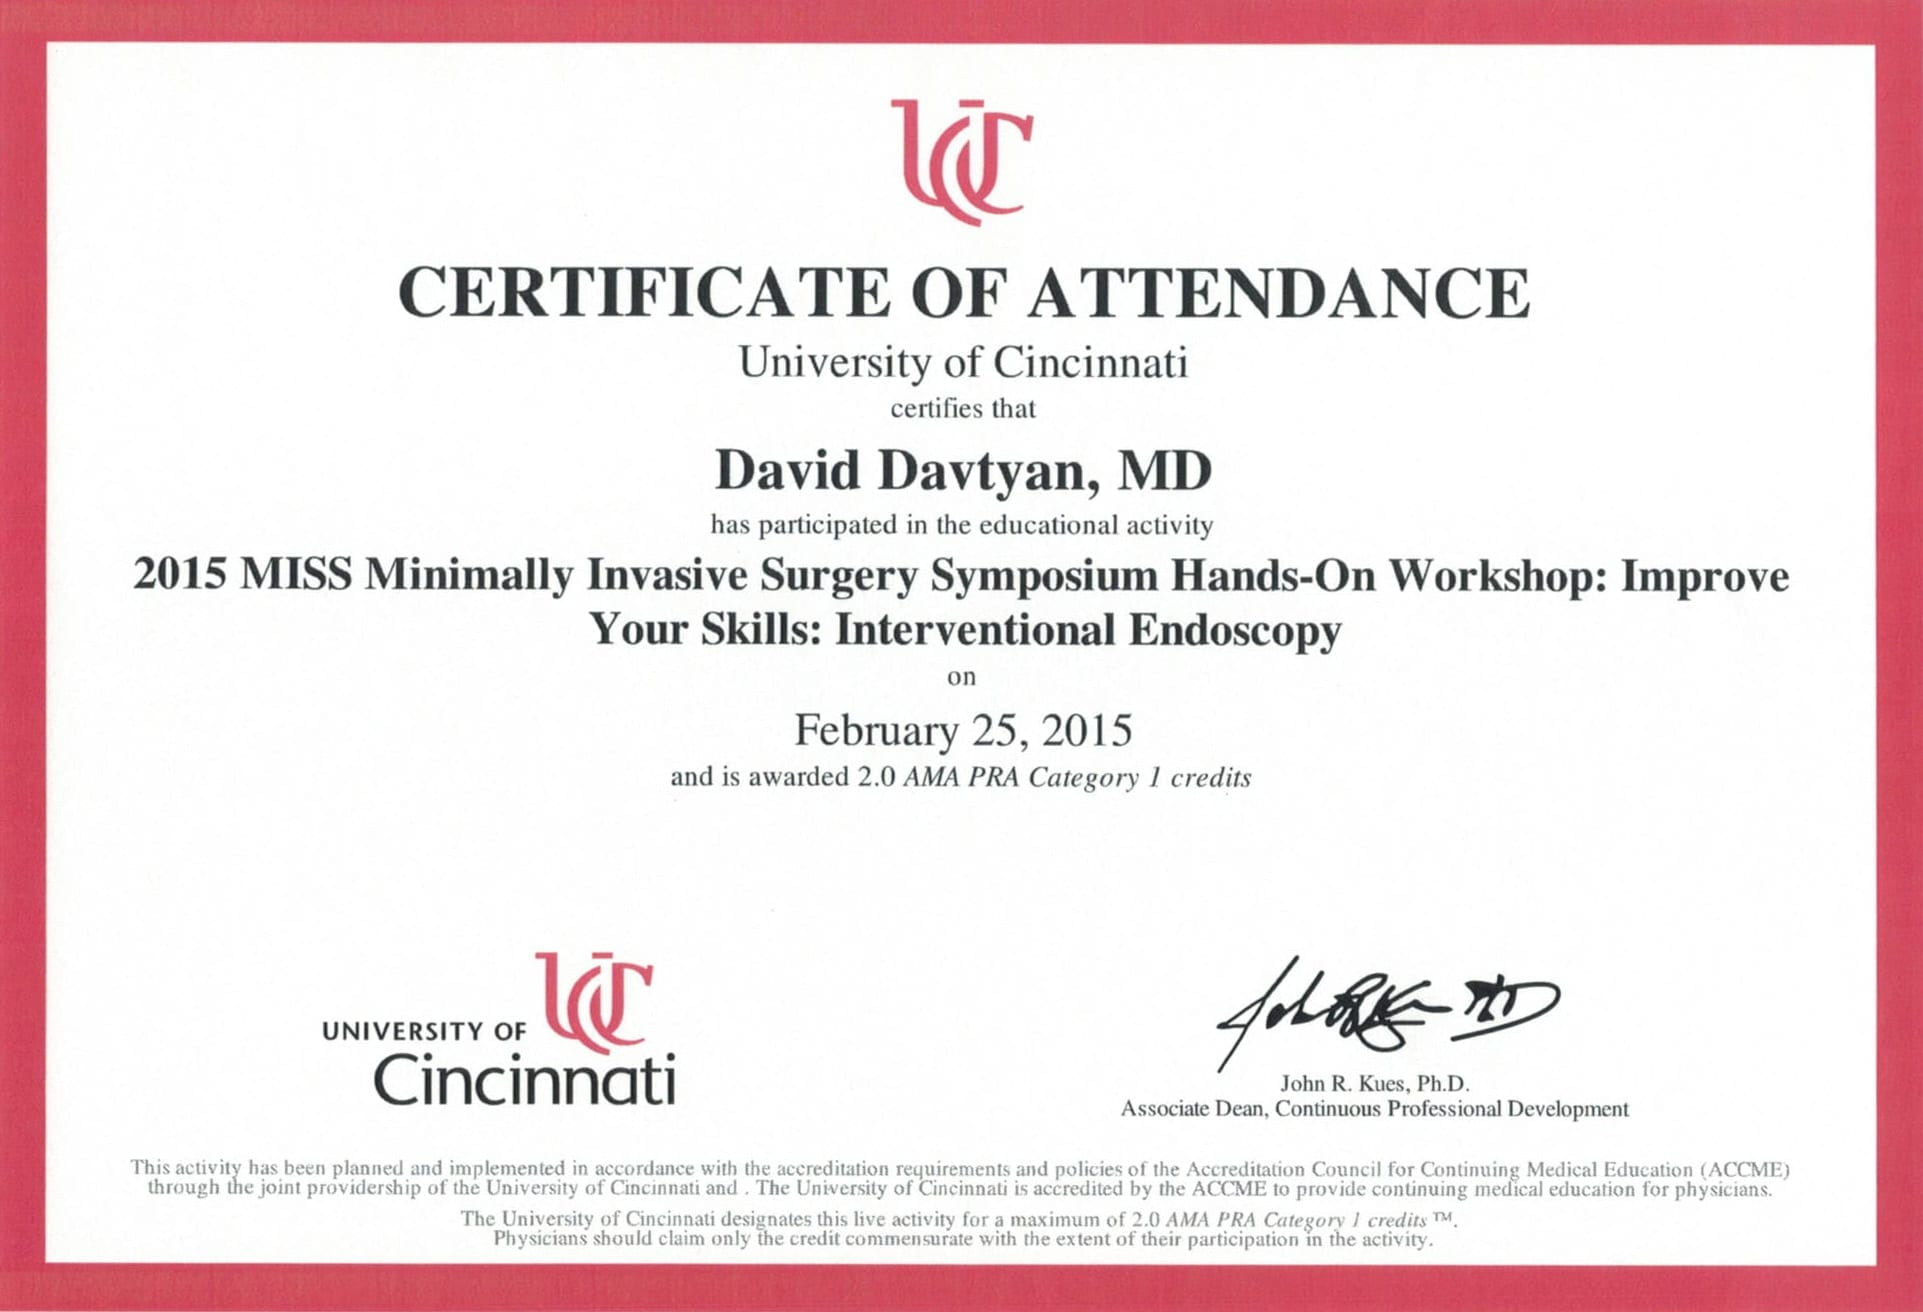 Dr. David Davtyan's 2015 University of Cincinnati MISS Minimally Invasive Surgery Symposium Certification Of Attendance